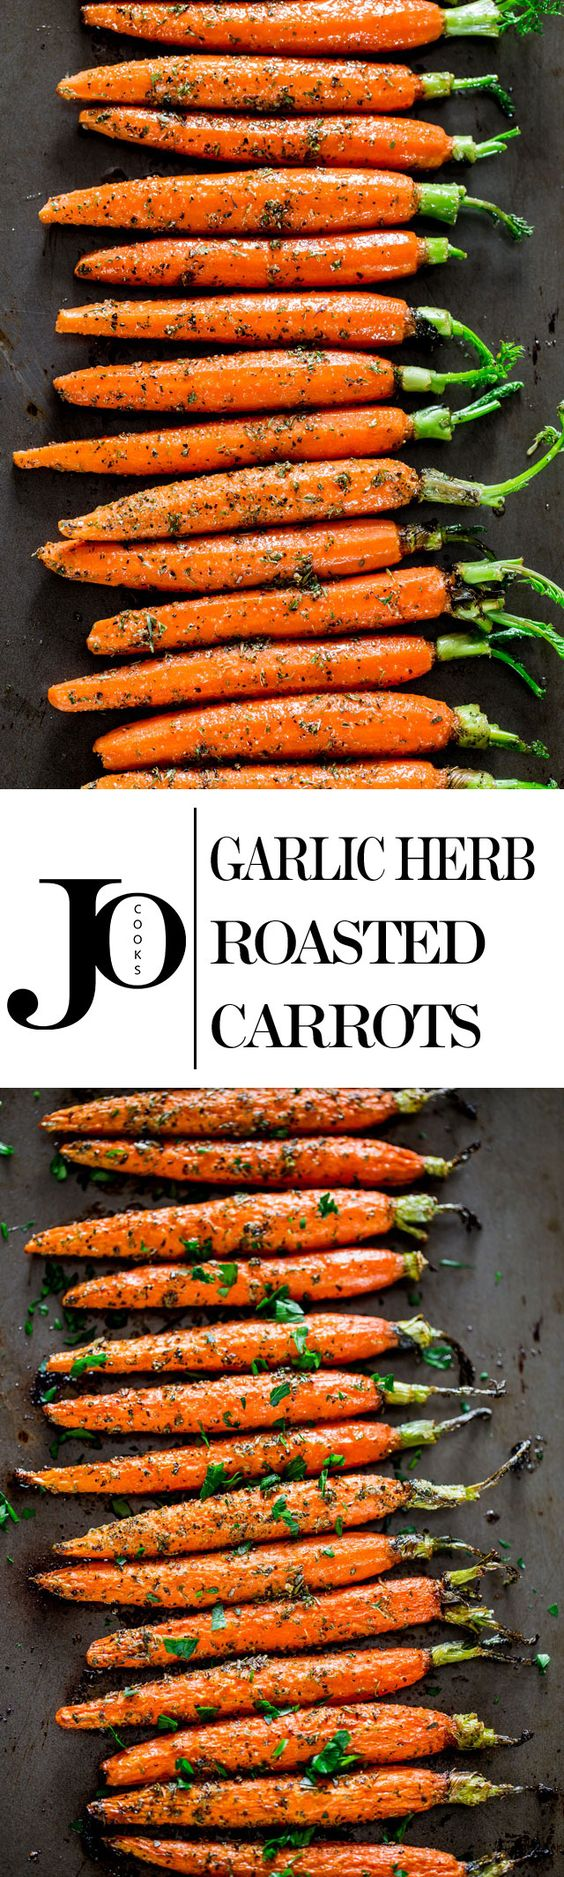 Garlic and Herb Roasted Carrots - these carrots are roasted to perfection with…